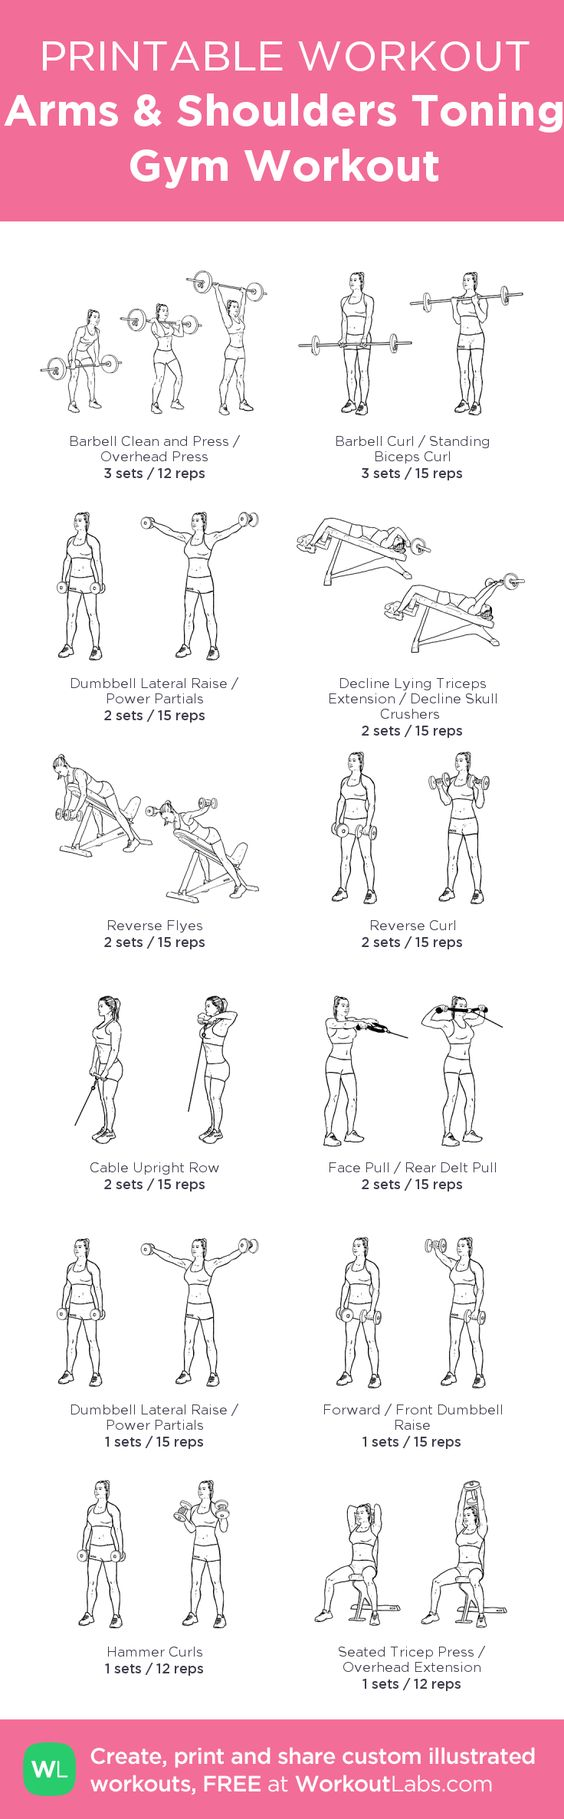 Intense Arms & Shoulders Toning Gym Workout for noticeable results in weeks. Grab the FREE PDF now: http://wlabs.me/1u2CiTq